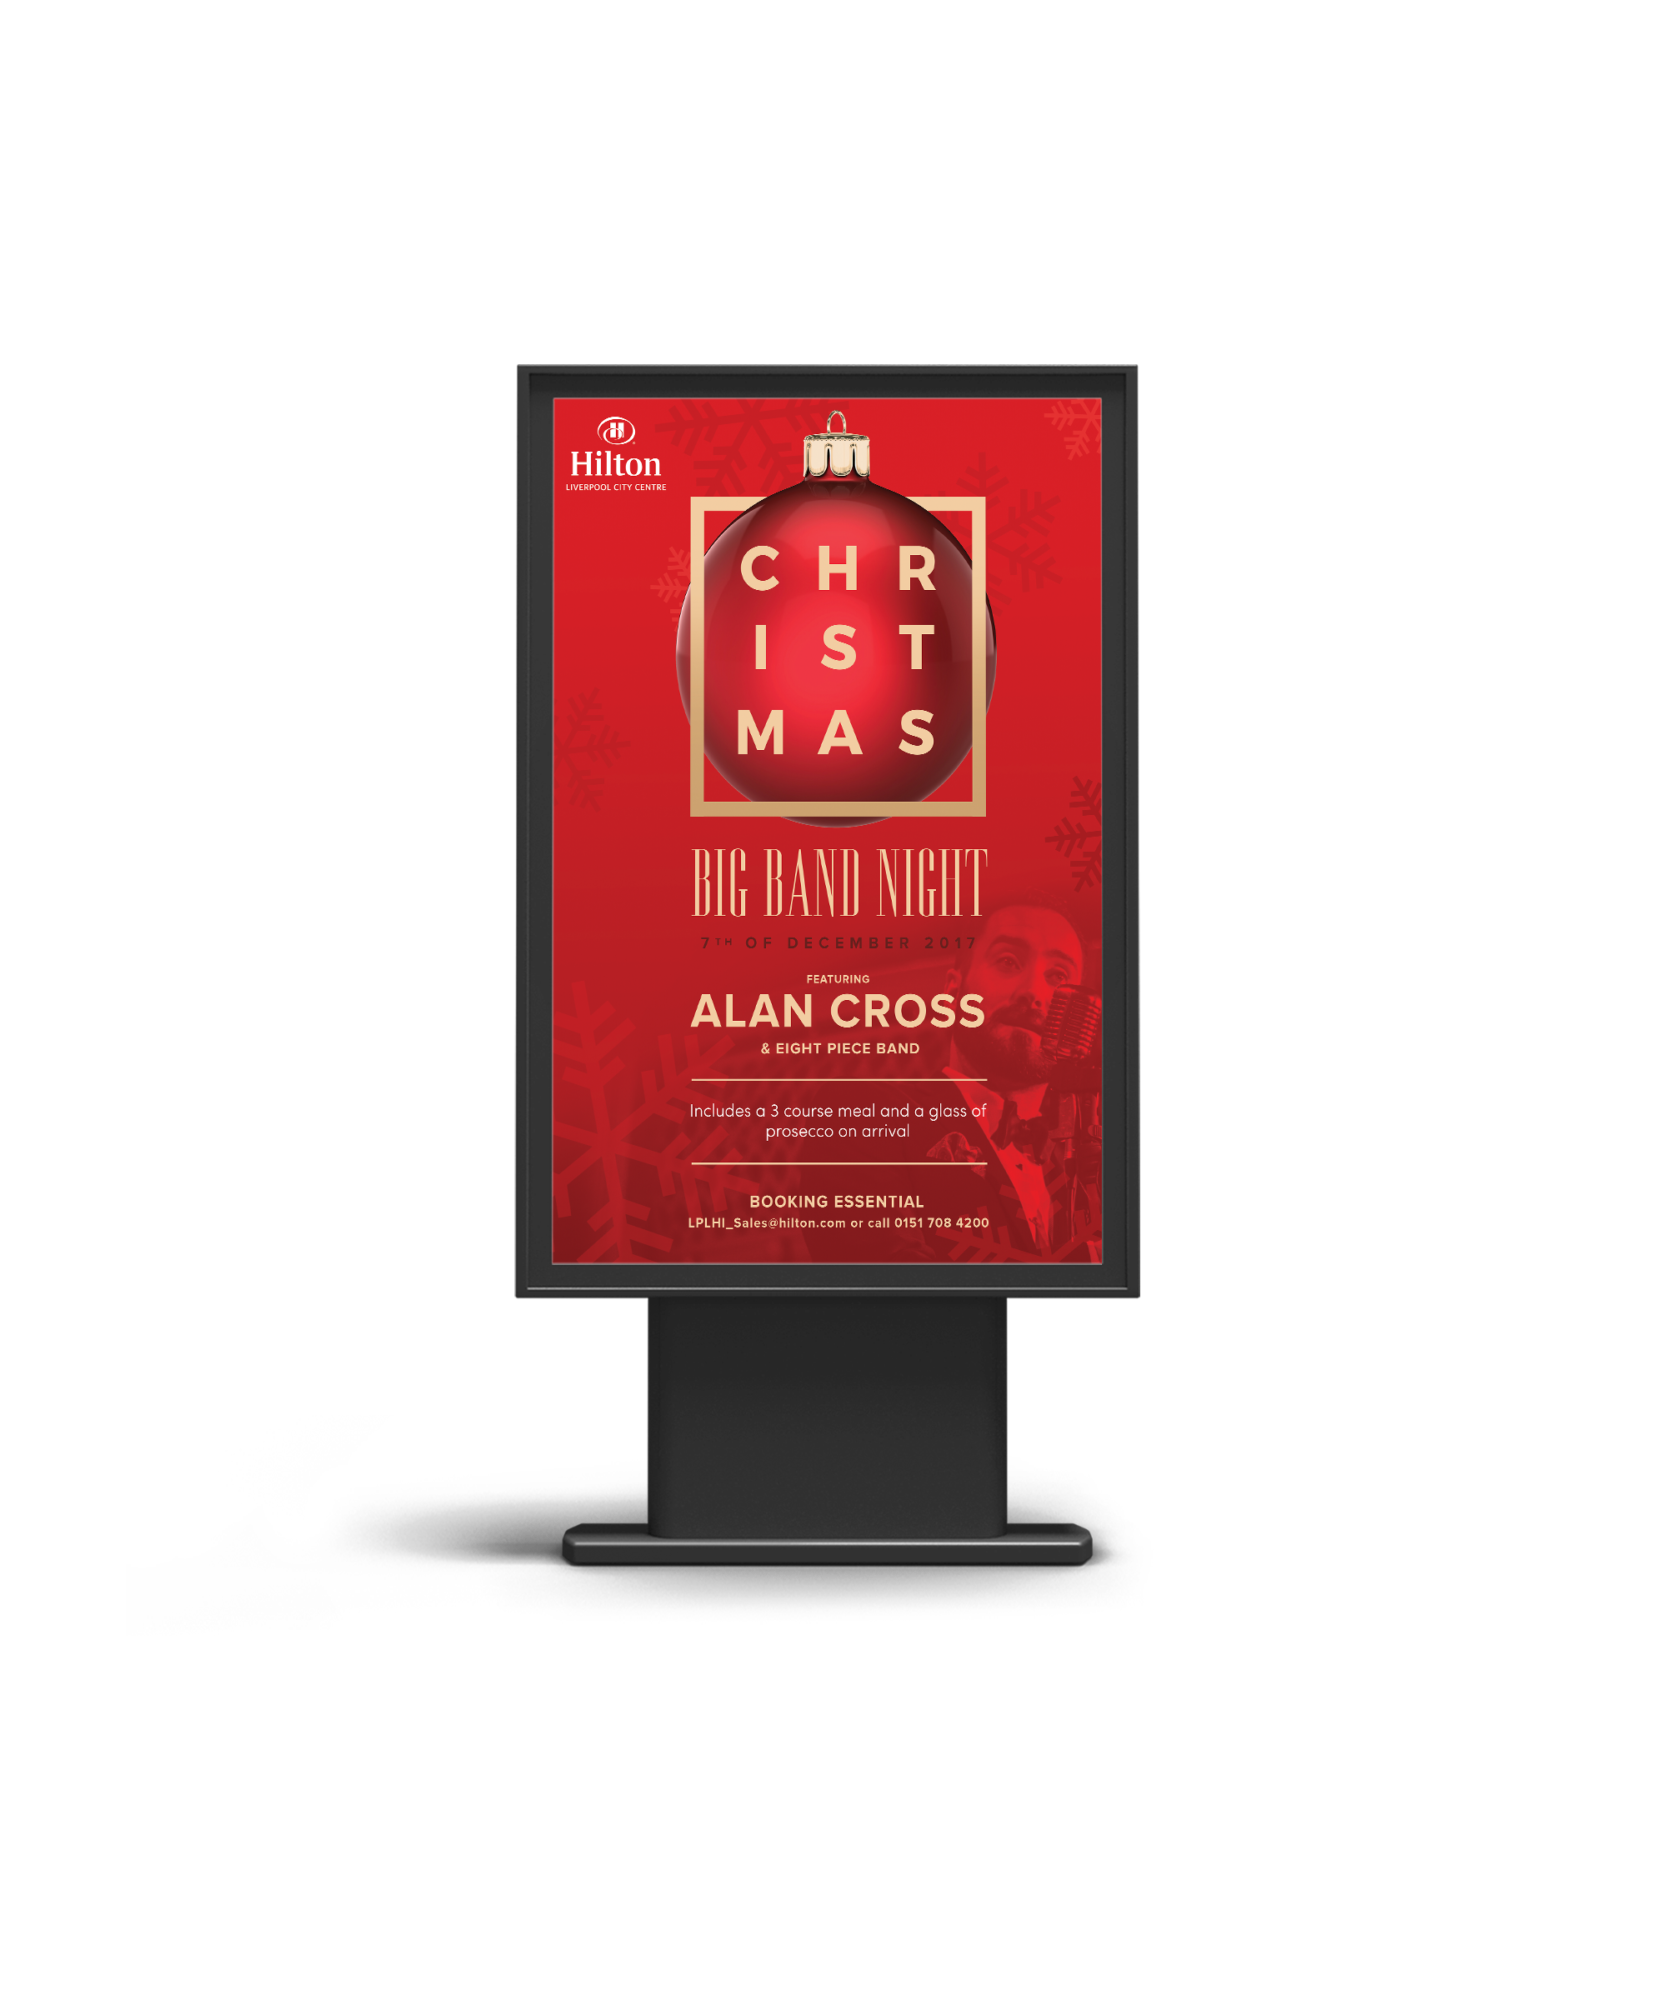 A red billboard poster promoting an event at the Hilton for a Christmas Big Band Night featuring Alan Cross.